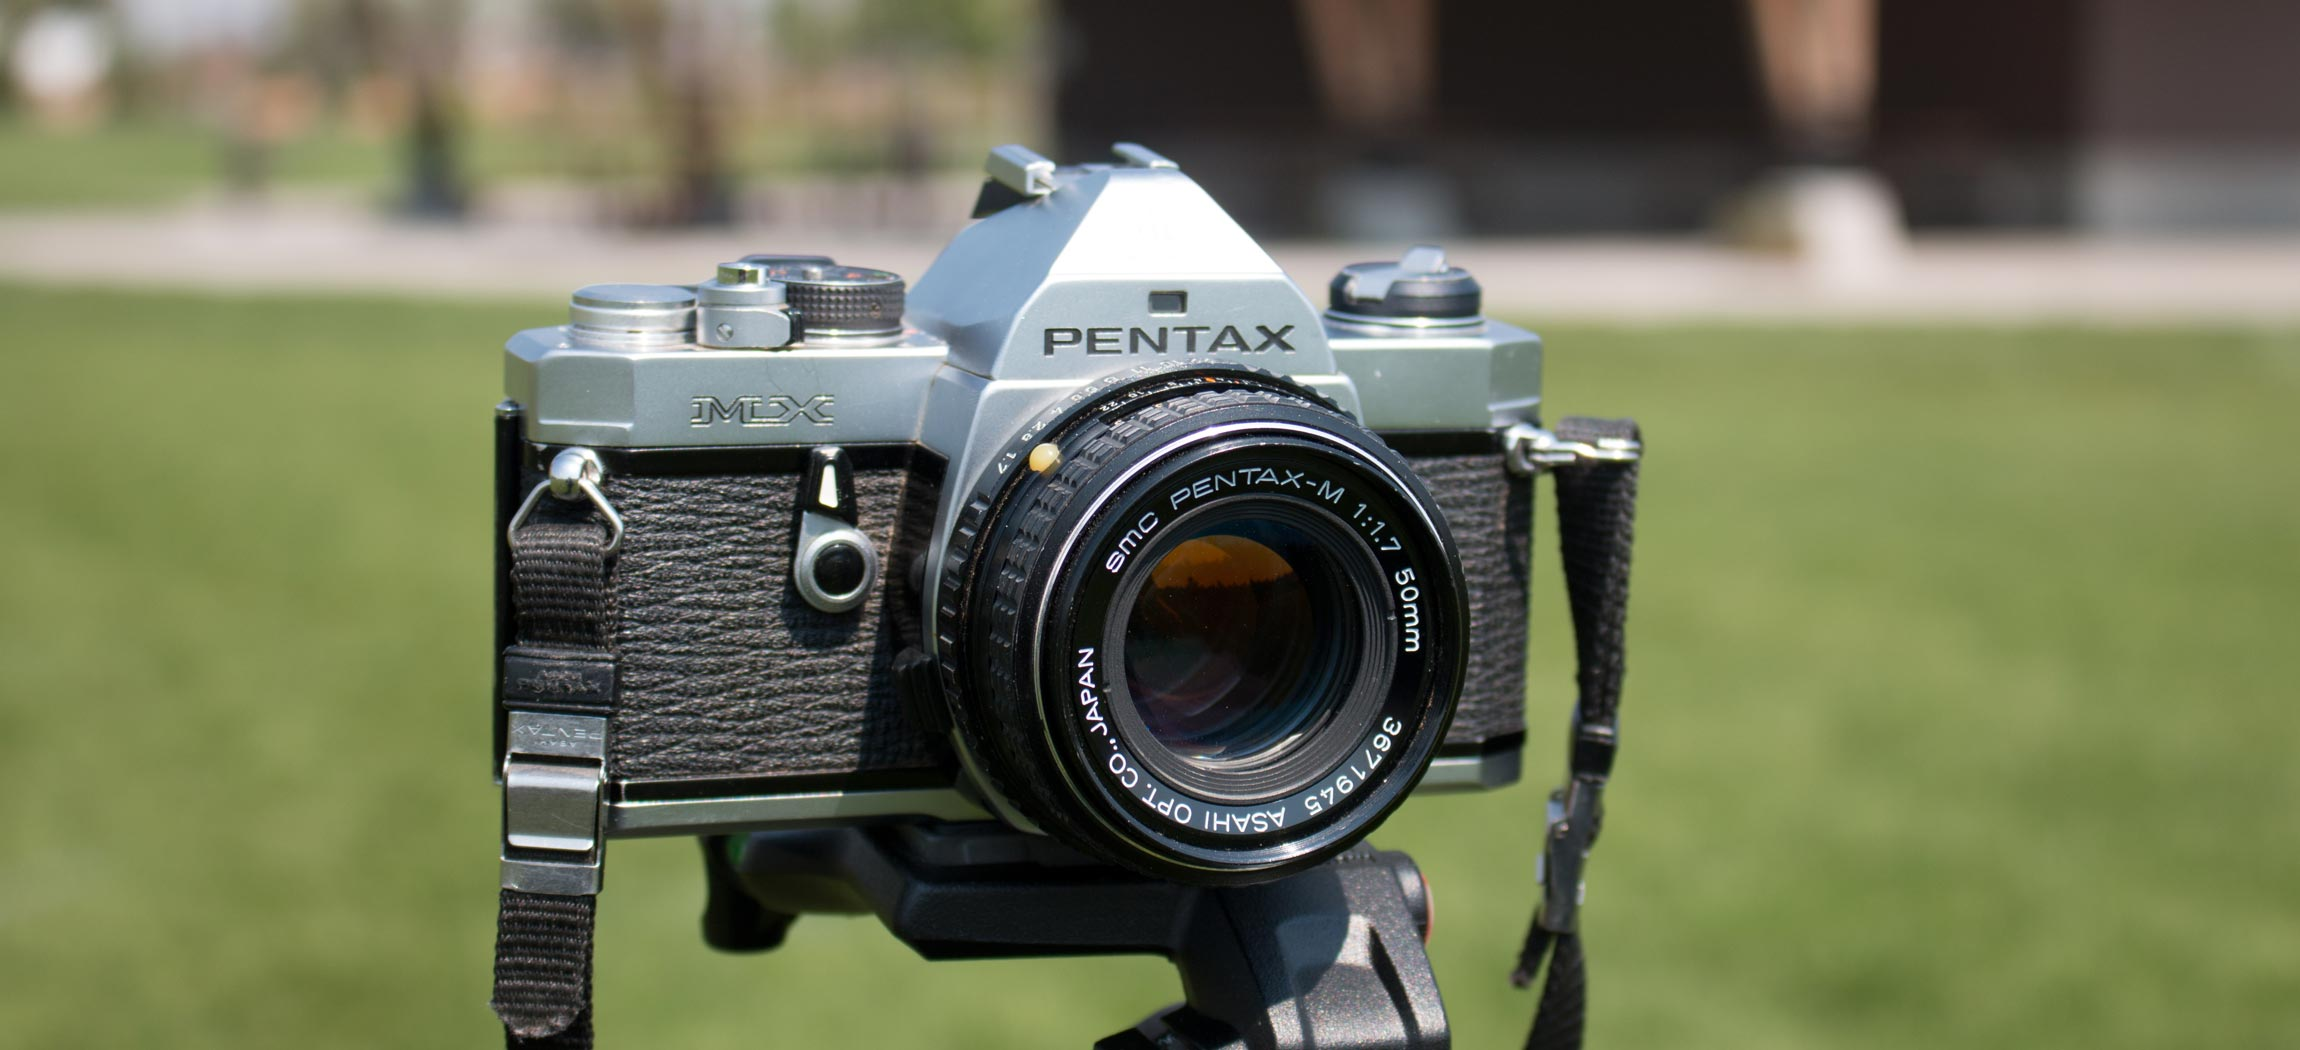 The Pentax MX